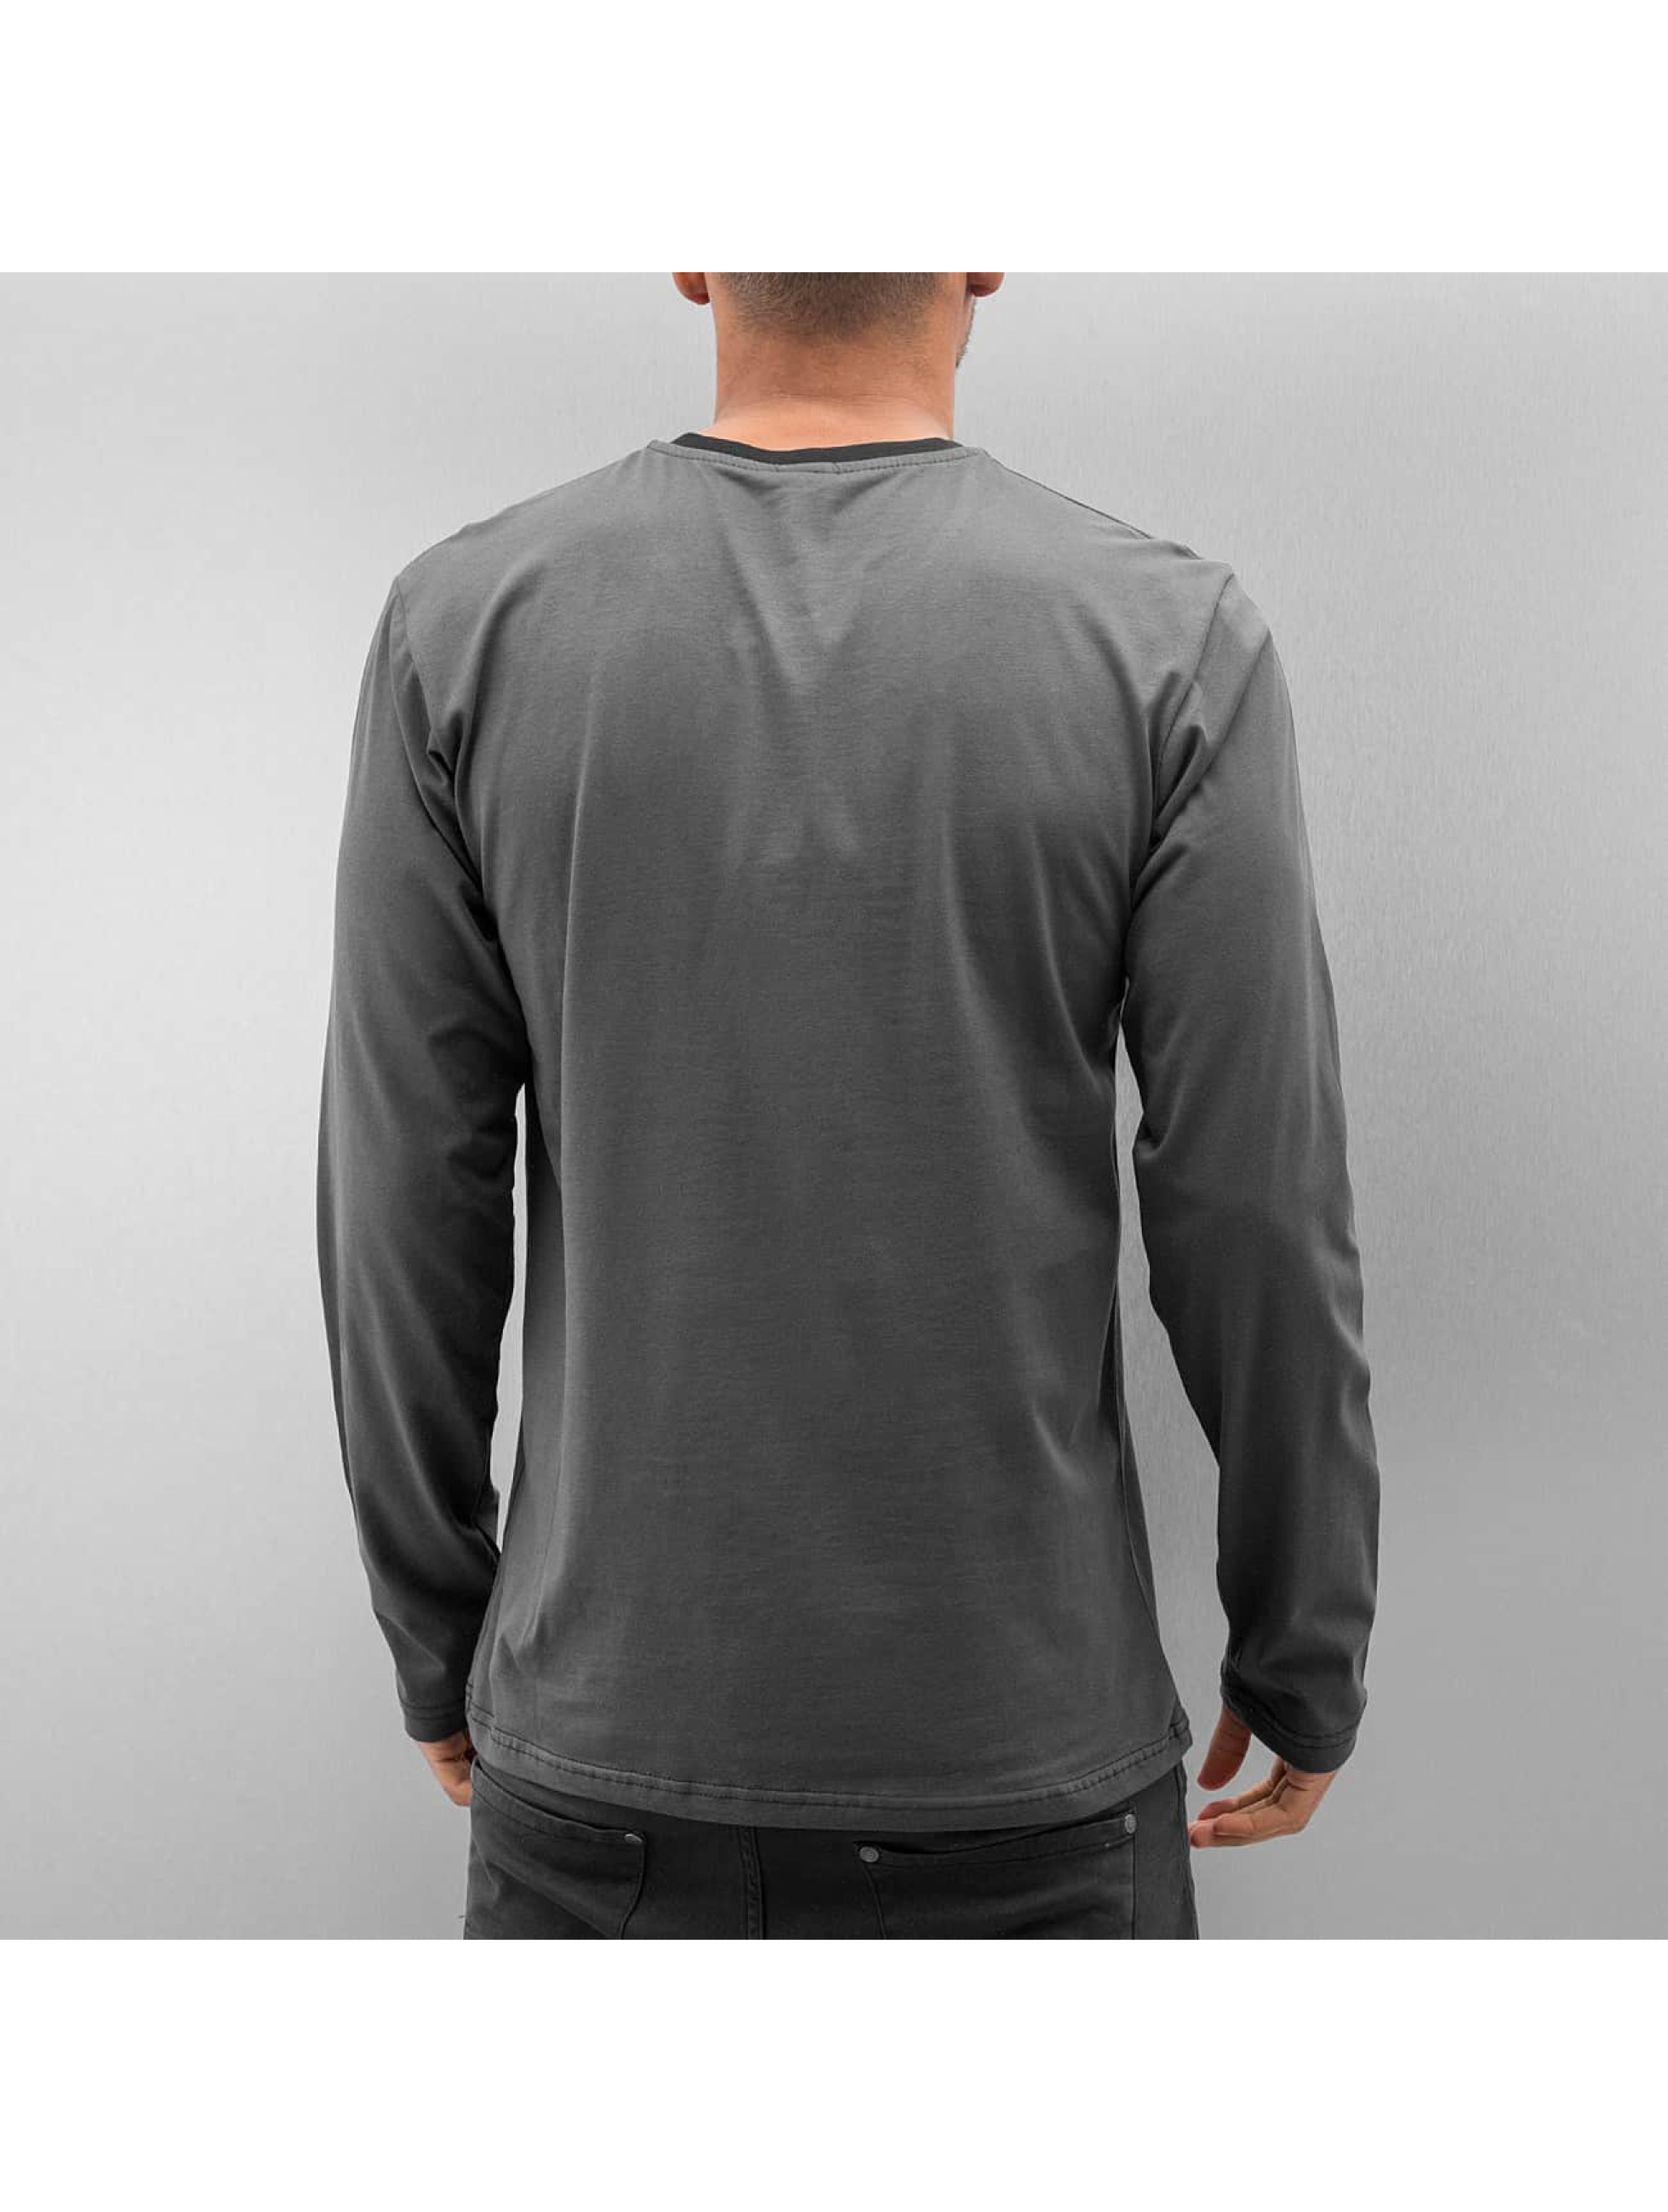 Cazzy Clang T-Shirt manches longues Hosea gris